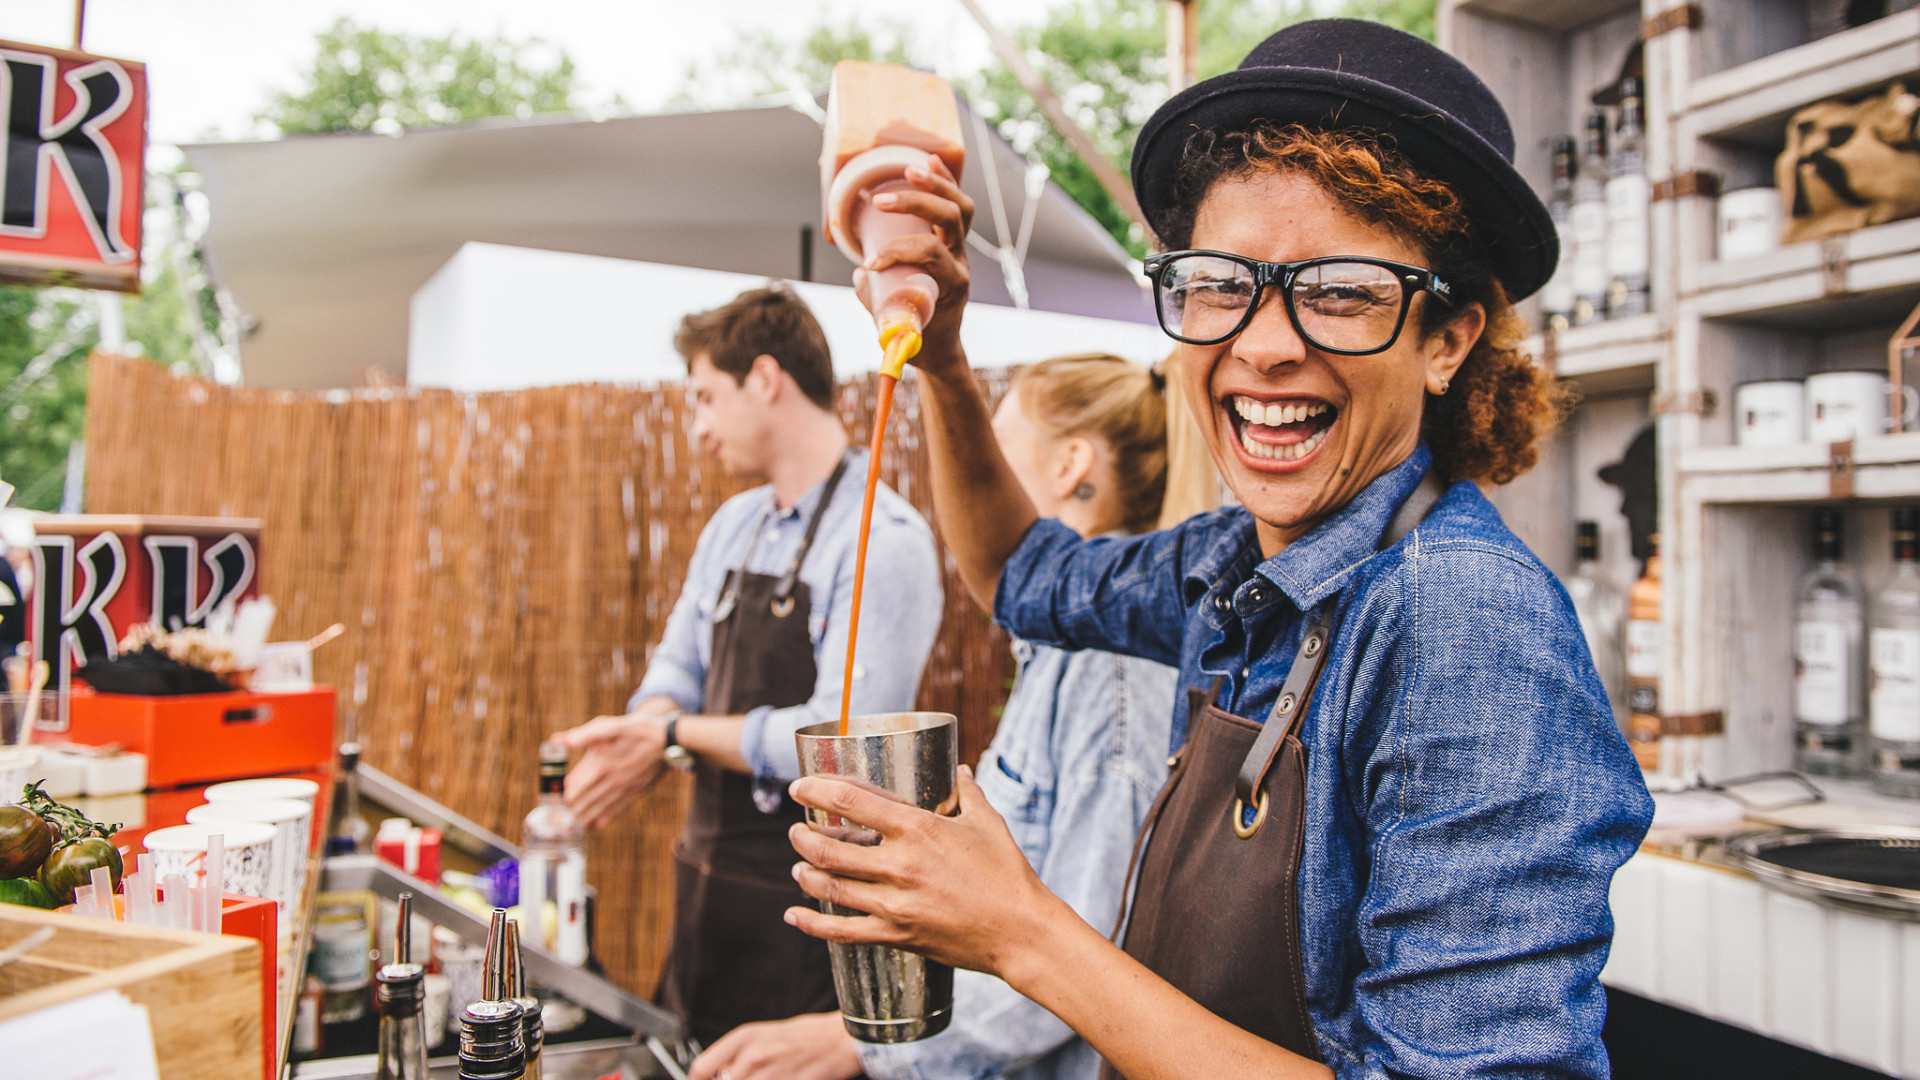 Taste of London is fun for both festival goers and industry insiders